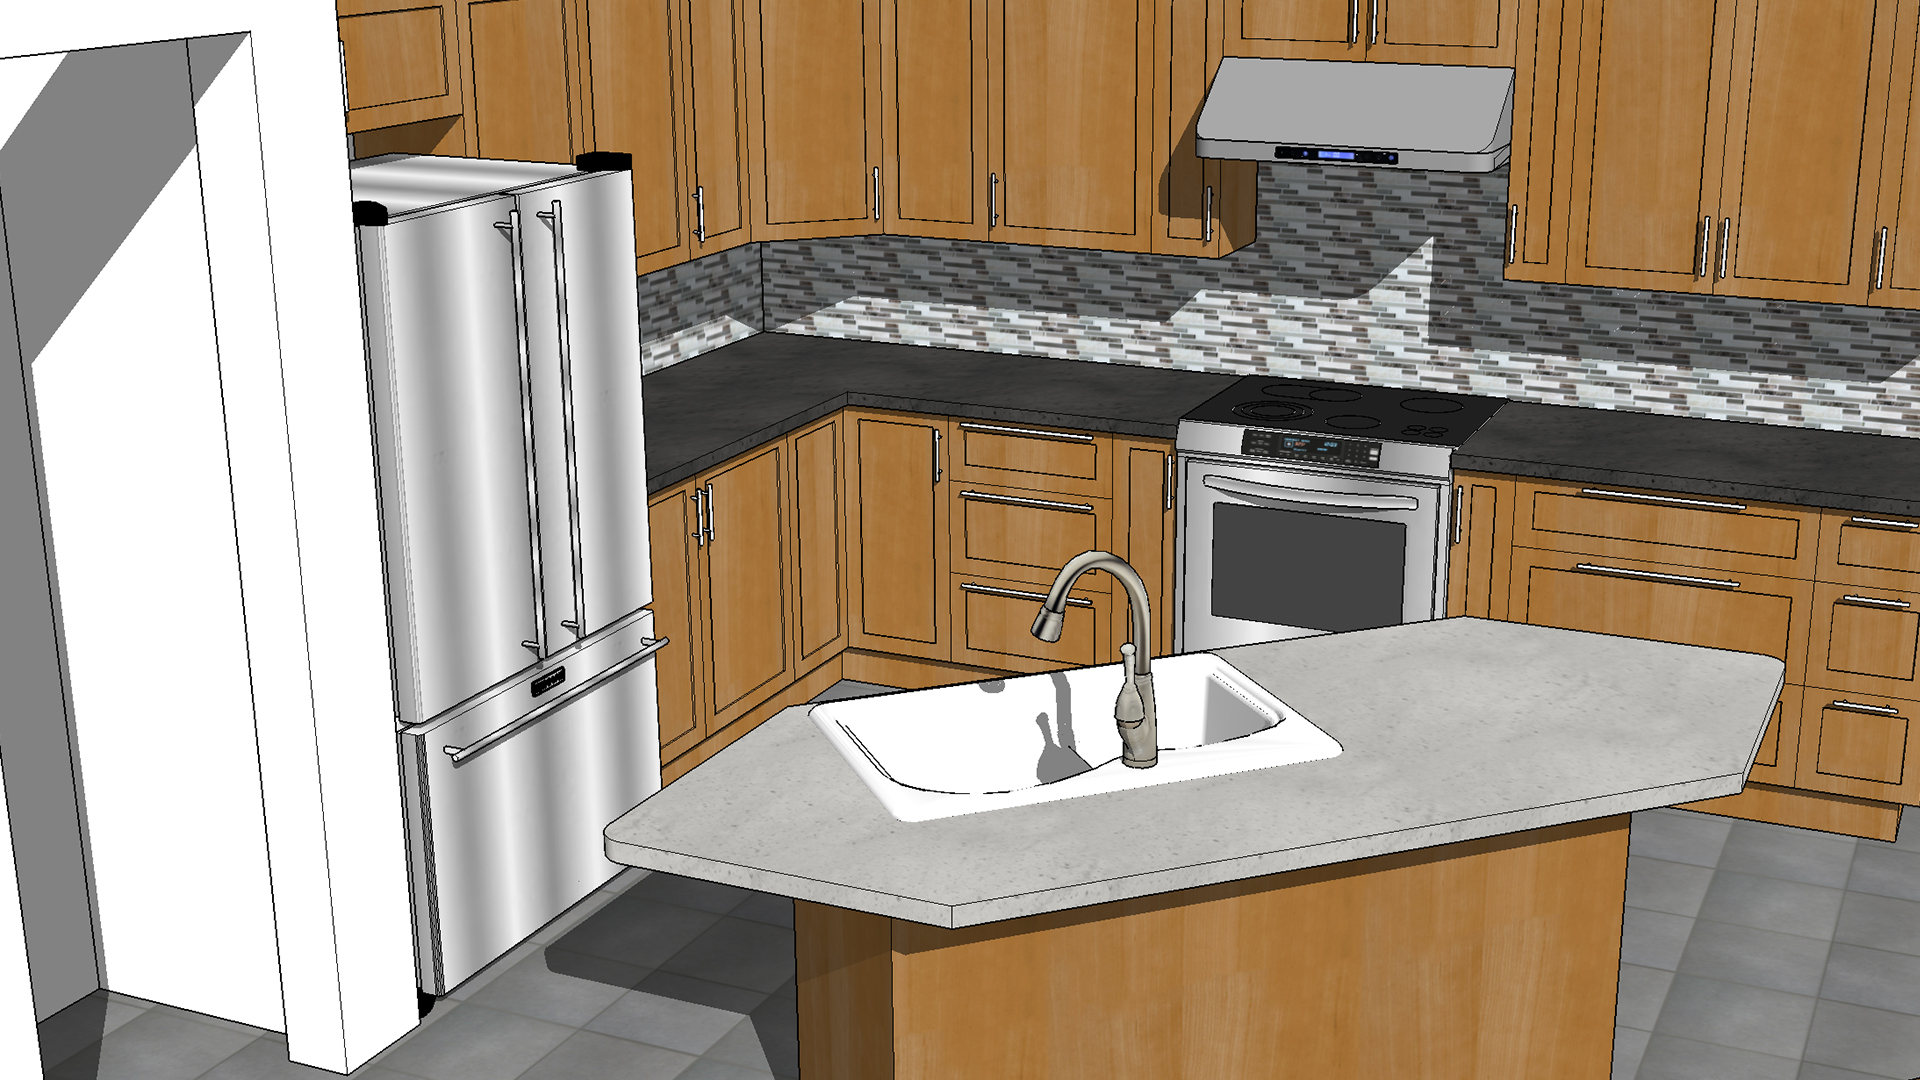 Sketchup Kitchen Design Cool Sketchup Kitchen Design Design Inspiration